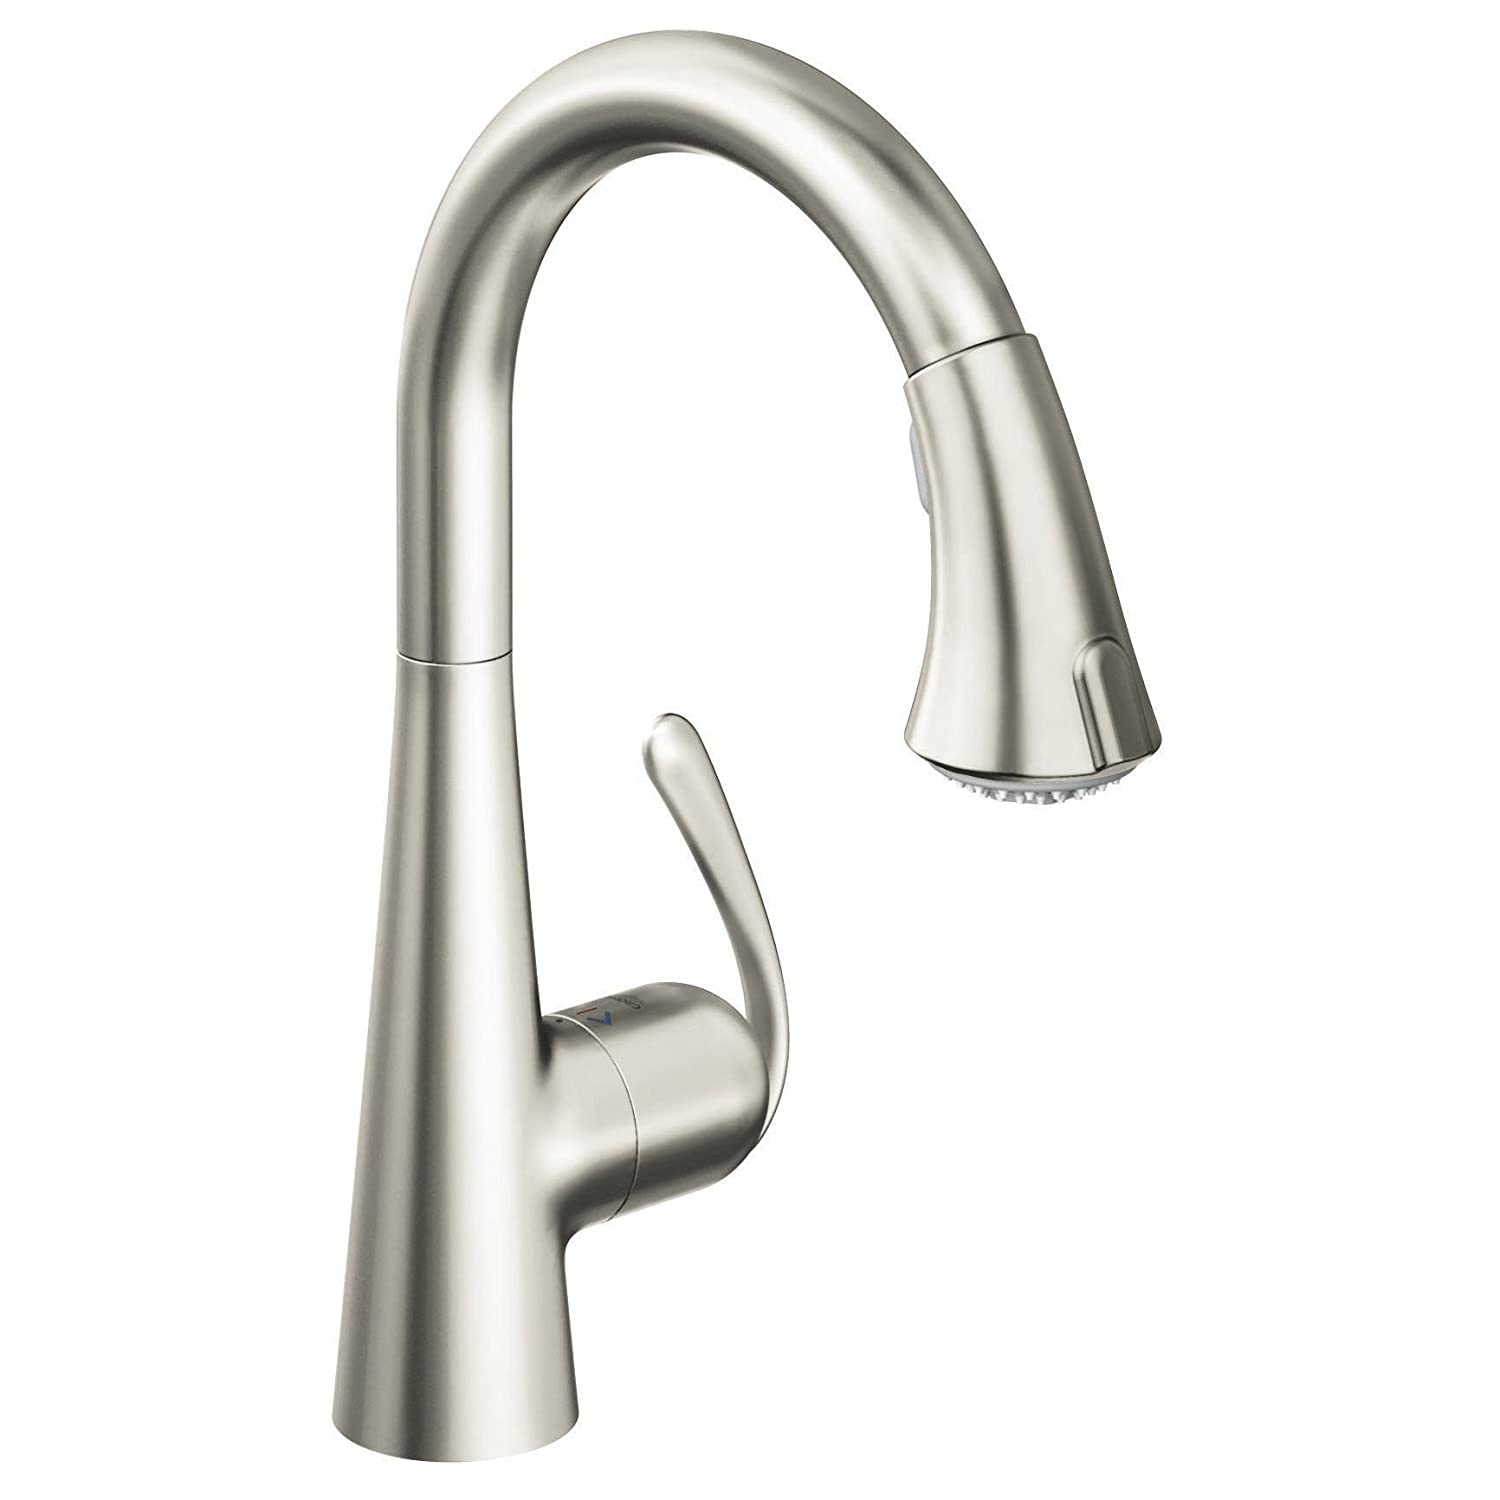 Grohe dc1 Ladylux Café Main Sink Dual Spray Pull Down Kitchen